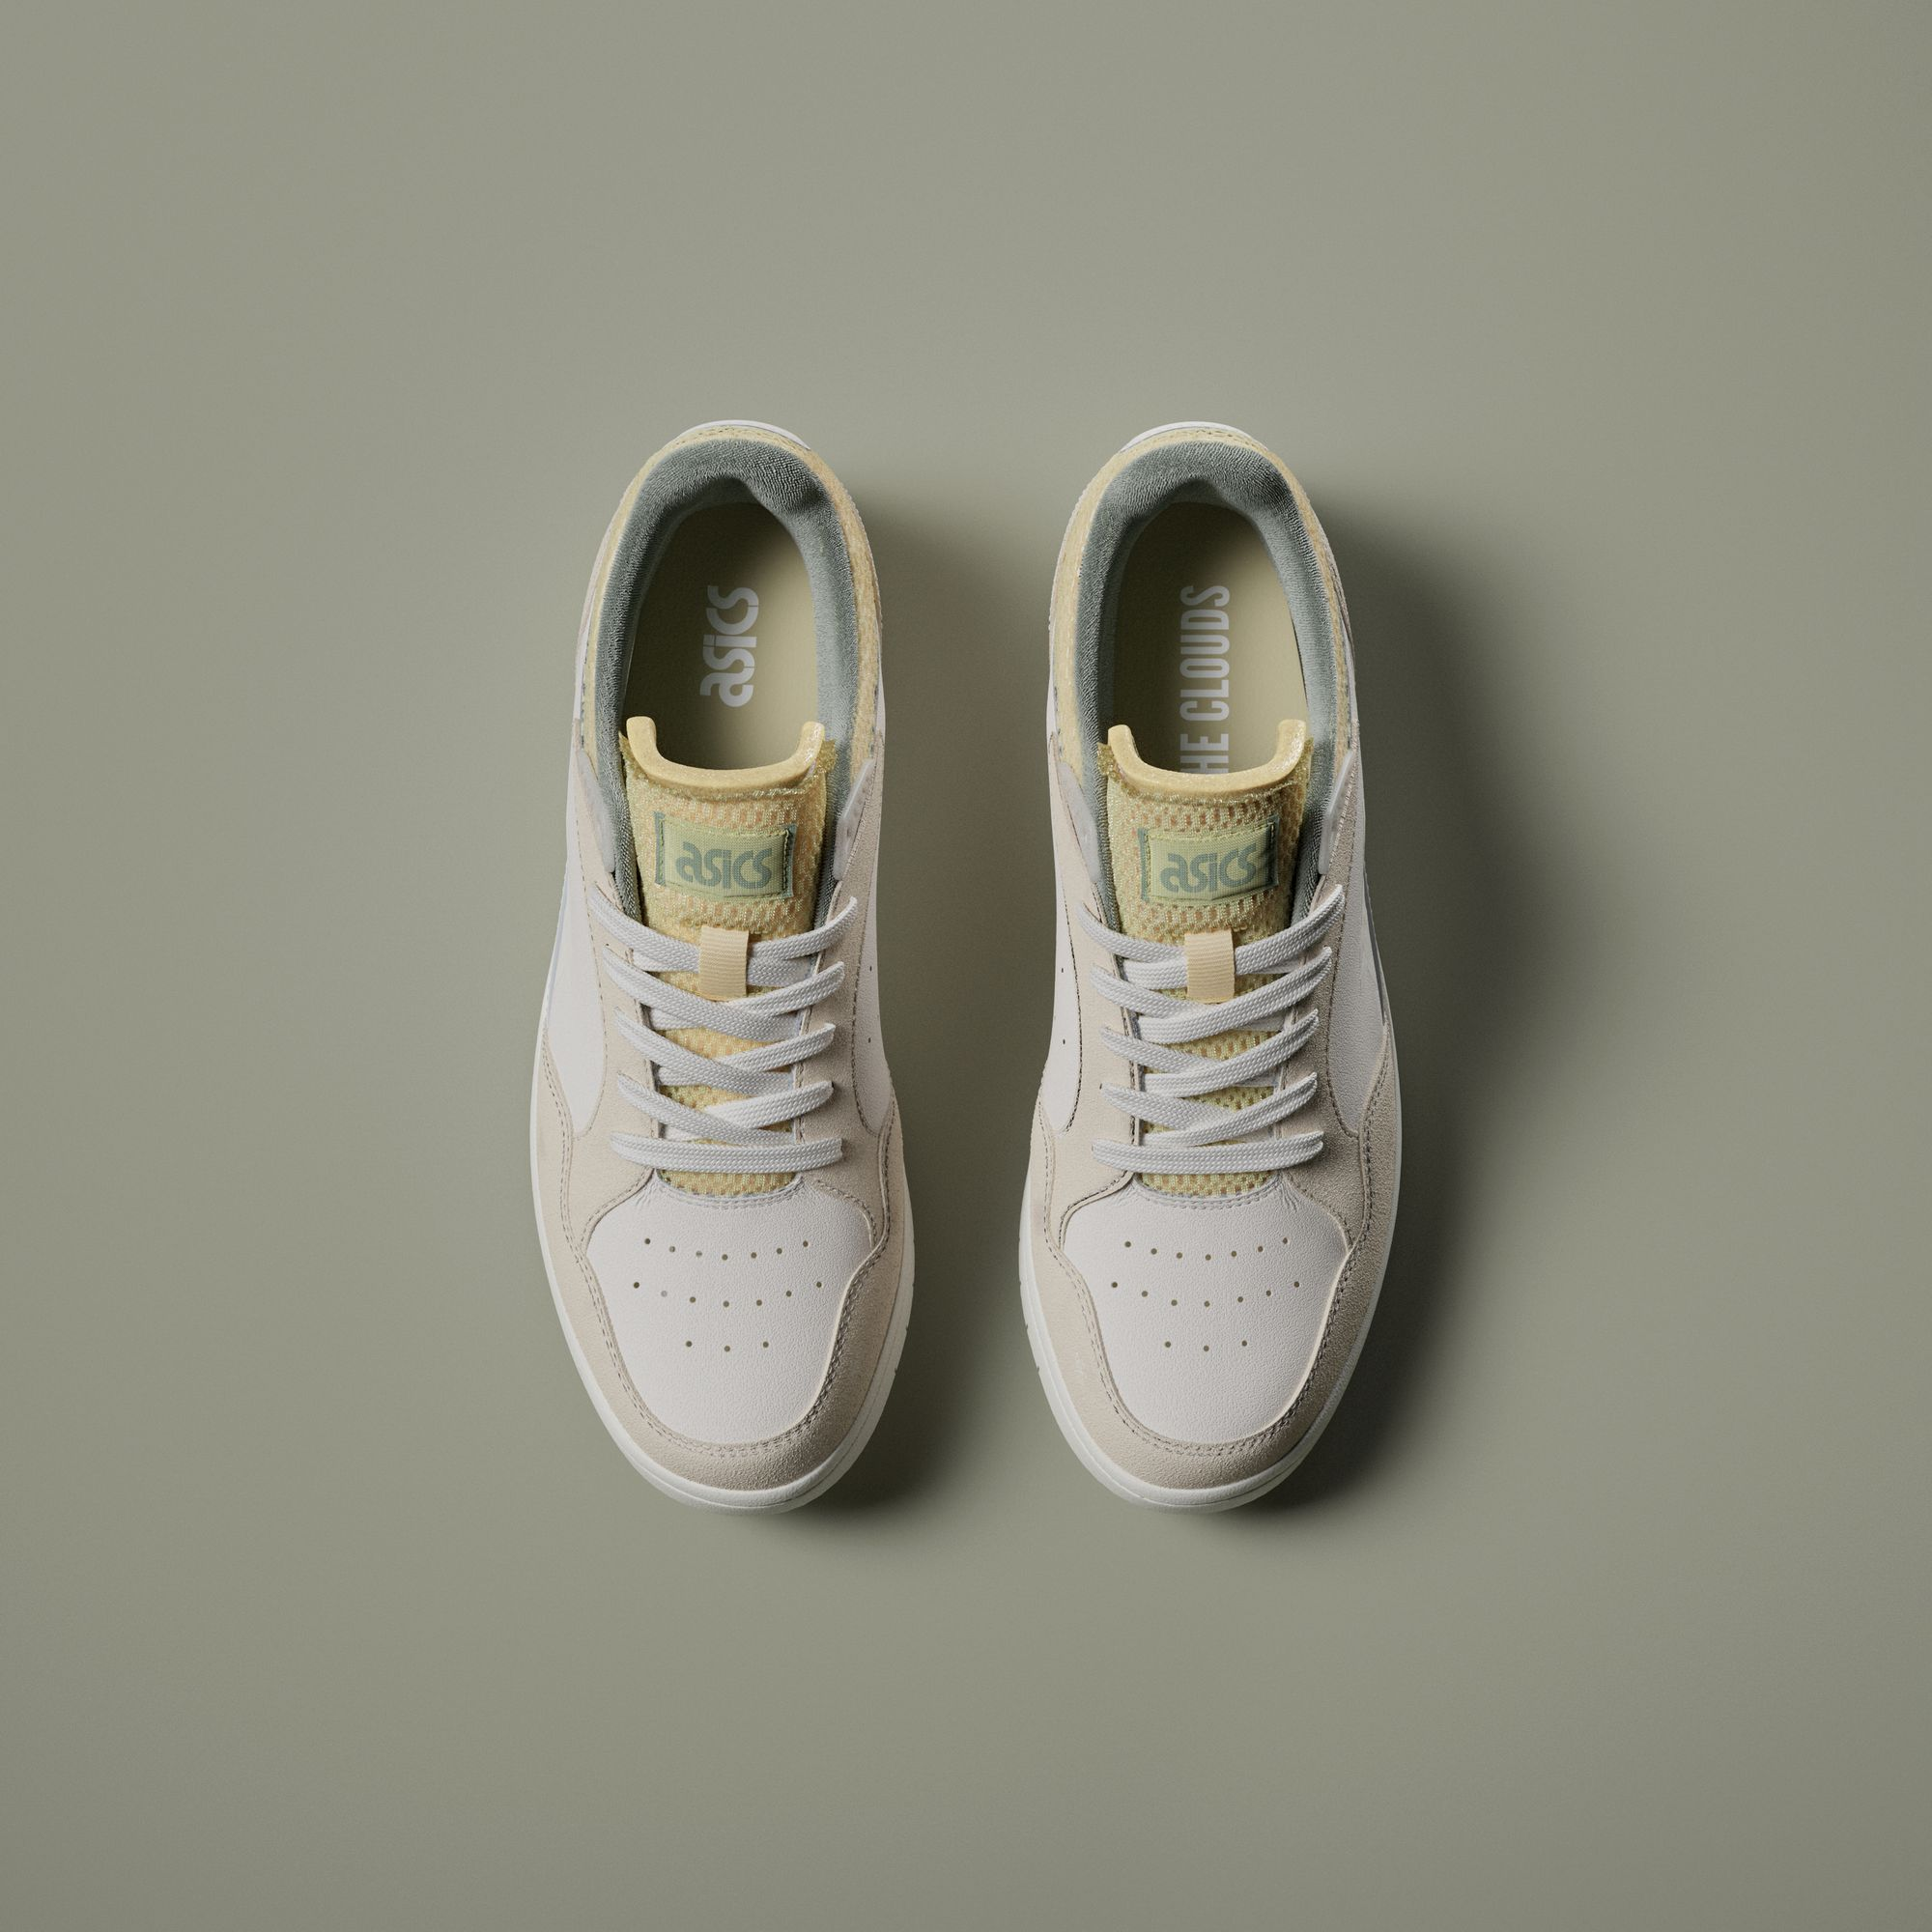 photo of the ASICSSportstyle x Above The Clouds - Skycourt - birch/sage green - 1201A39-200